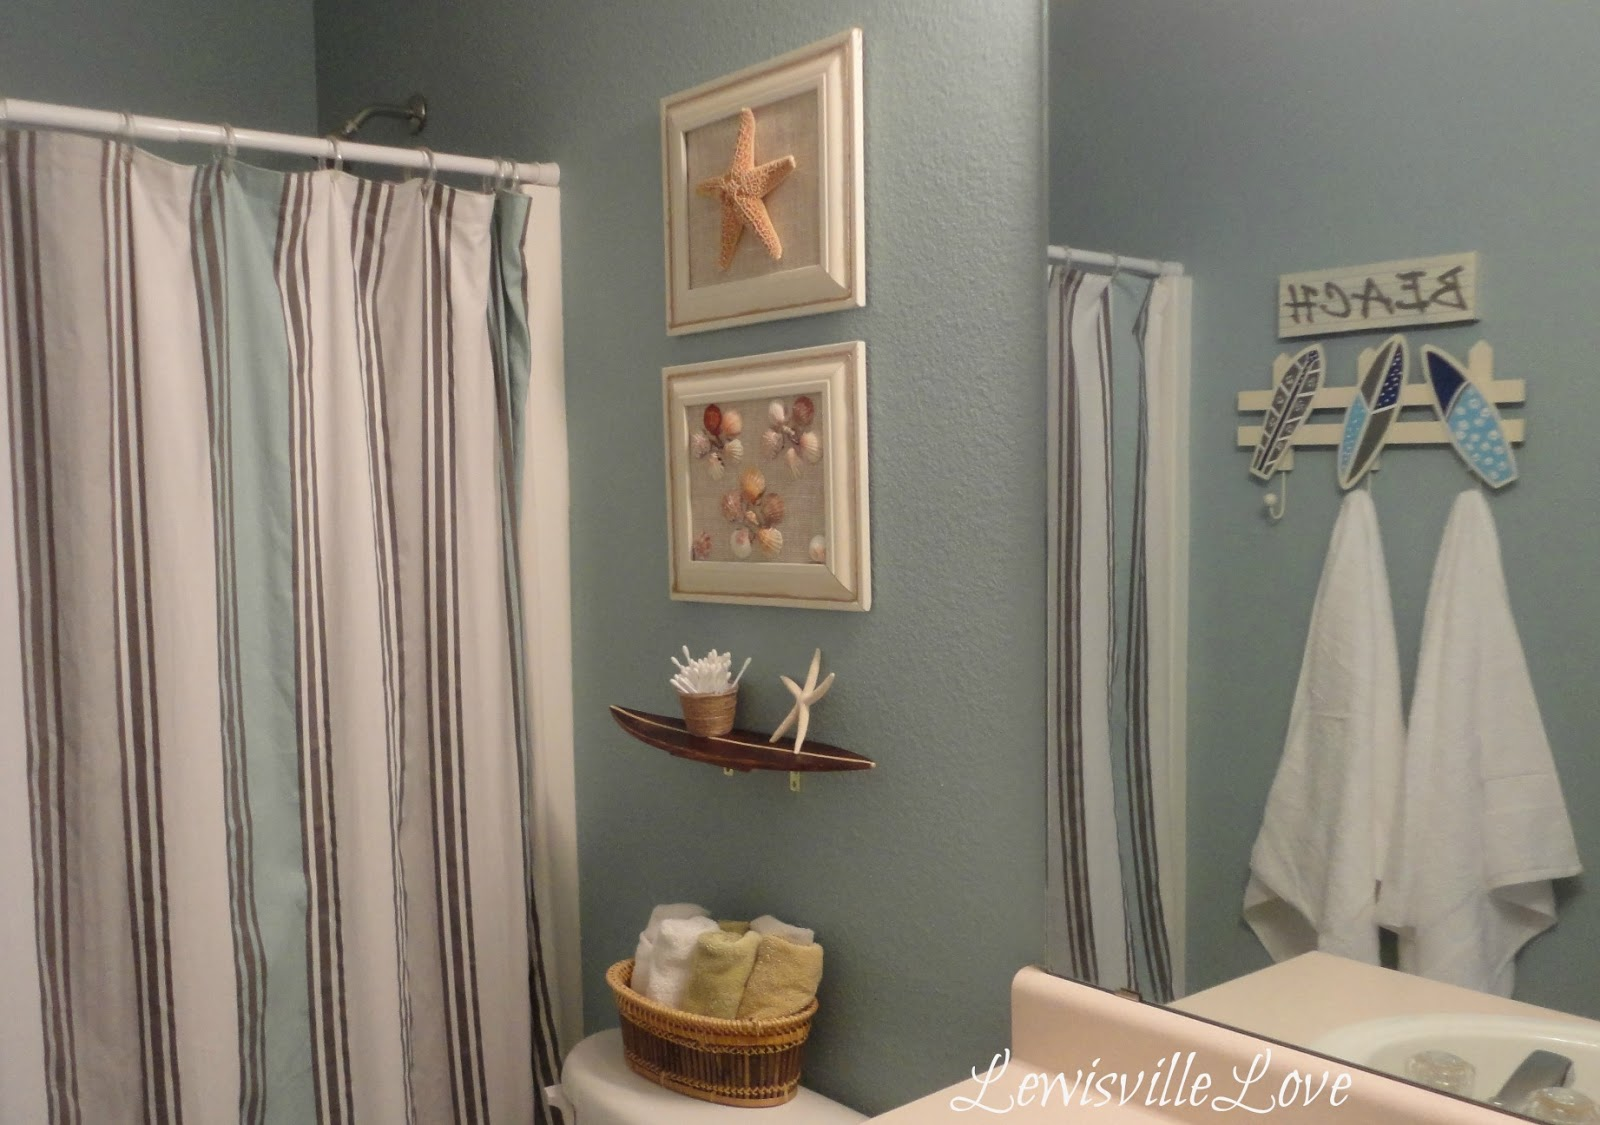 Themed Bathrooms Ideas Lewisville Love Beach Theme Bathroom Reveal